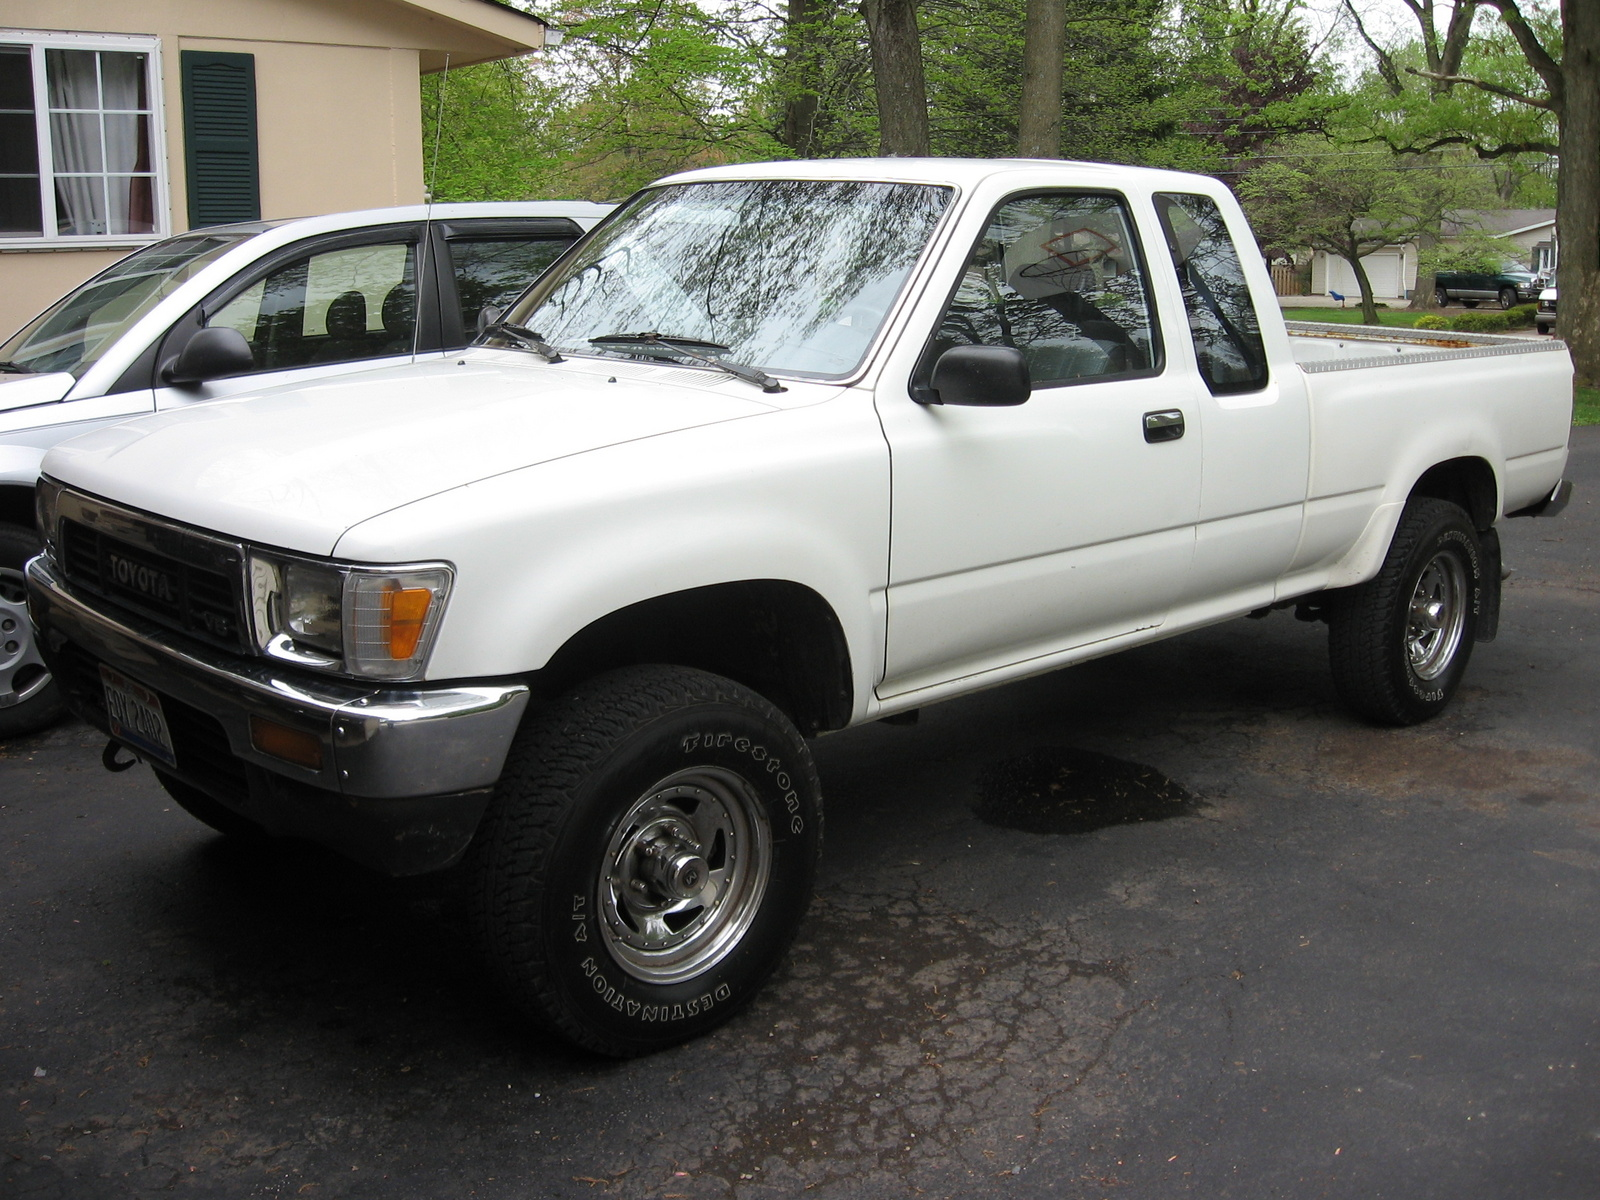 Toyota Hilux 1991 photo - 1